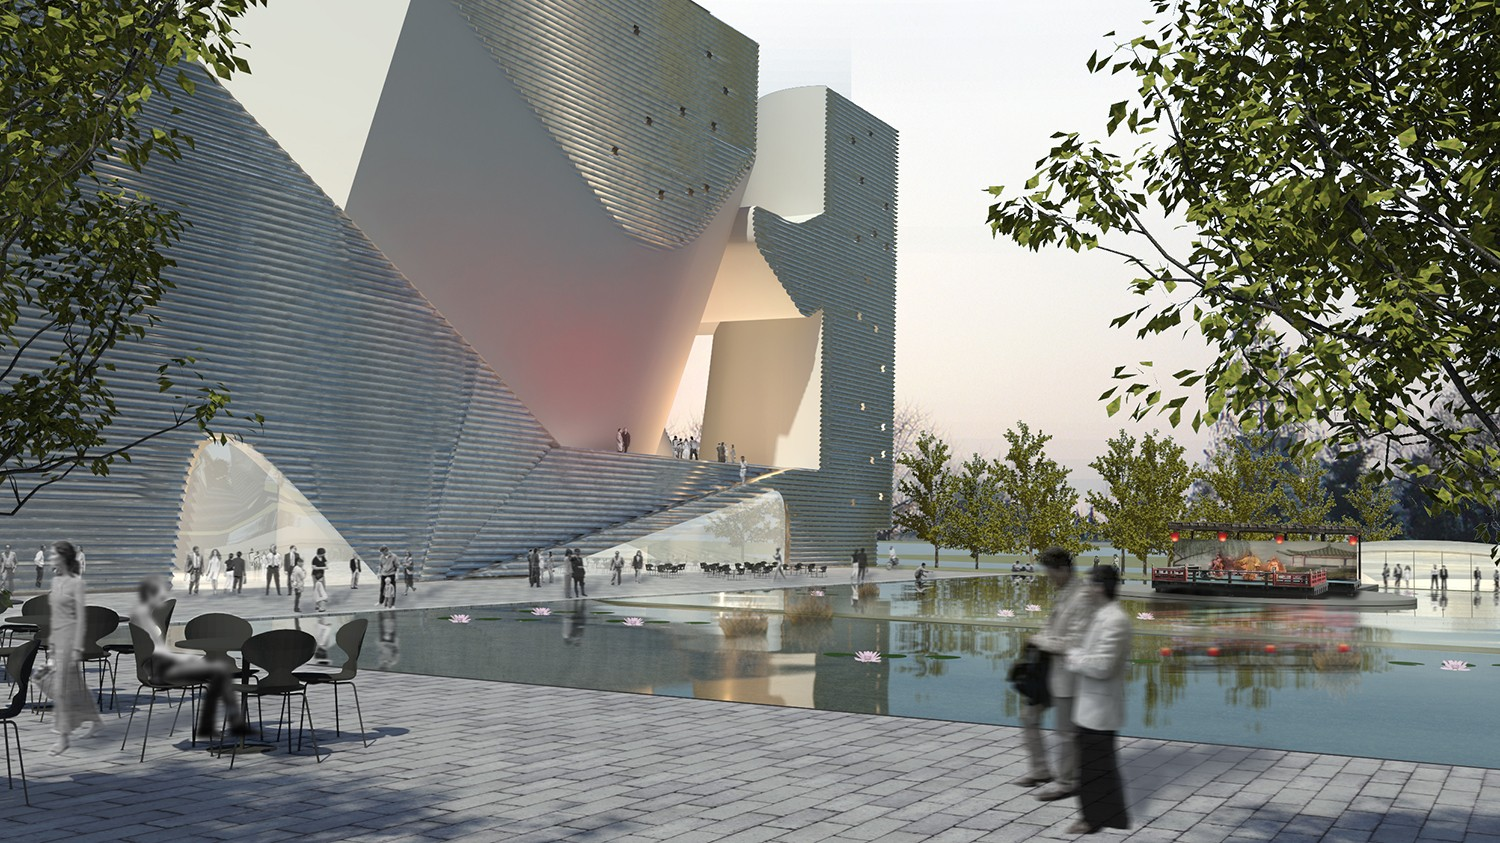 https://stevenholl.sfo2.digitaloceanspaces.com/uploads/projects/project-images/StevenHollArchitects_Tianjin_TianjinView01_WH.jpg